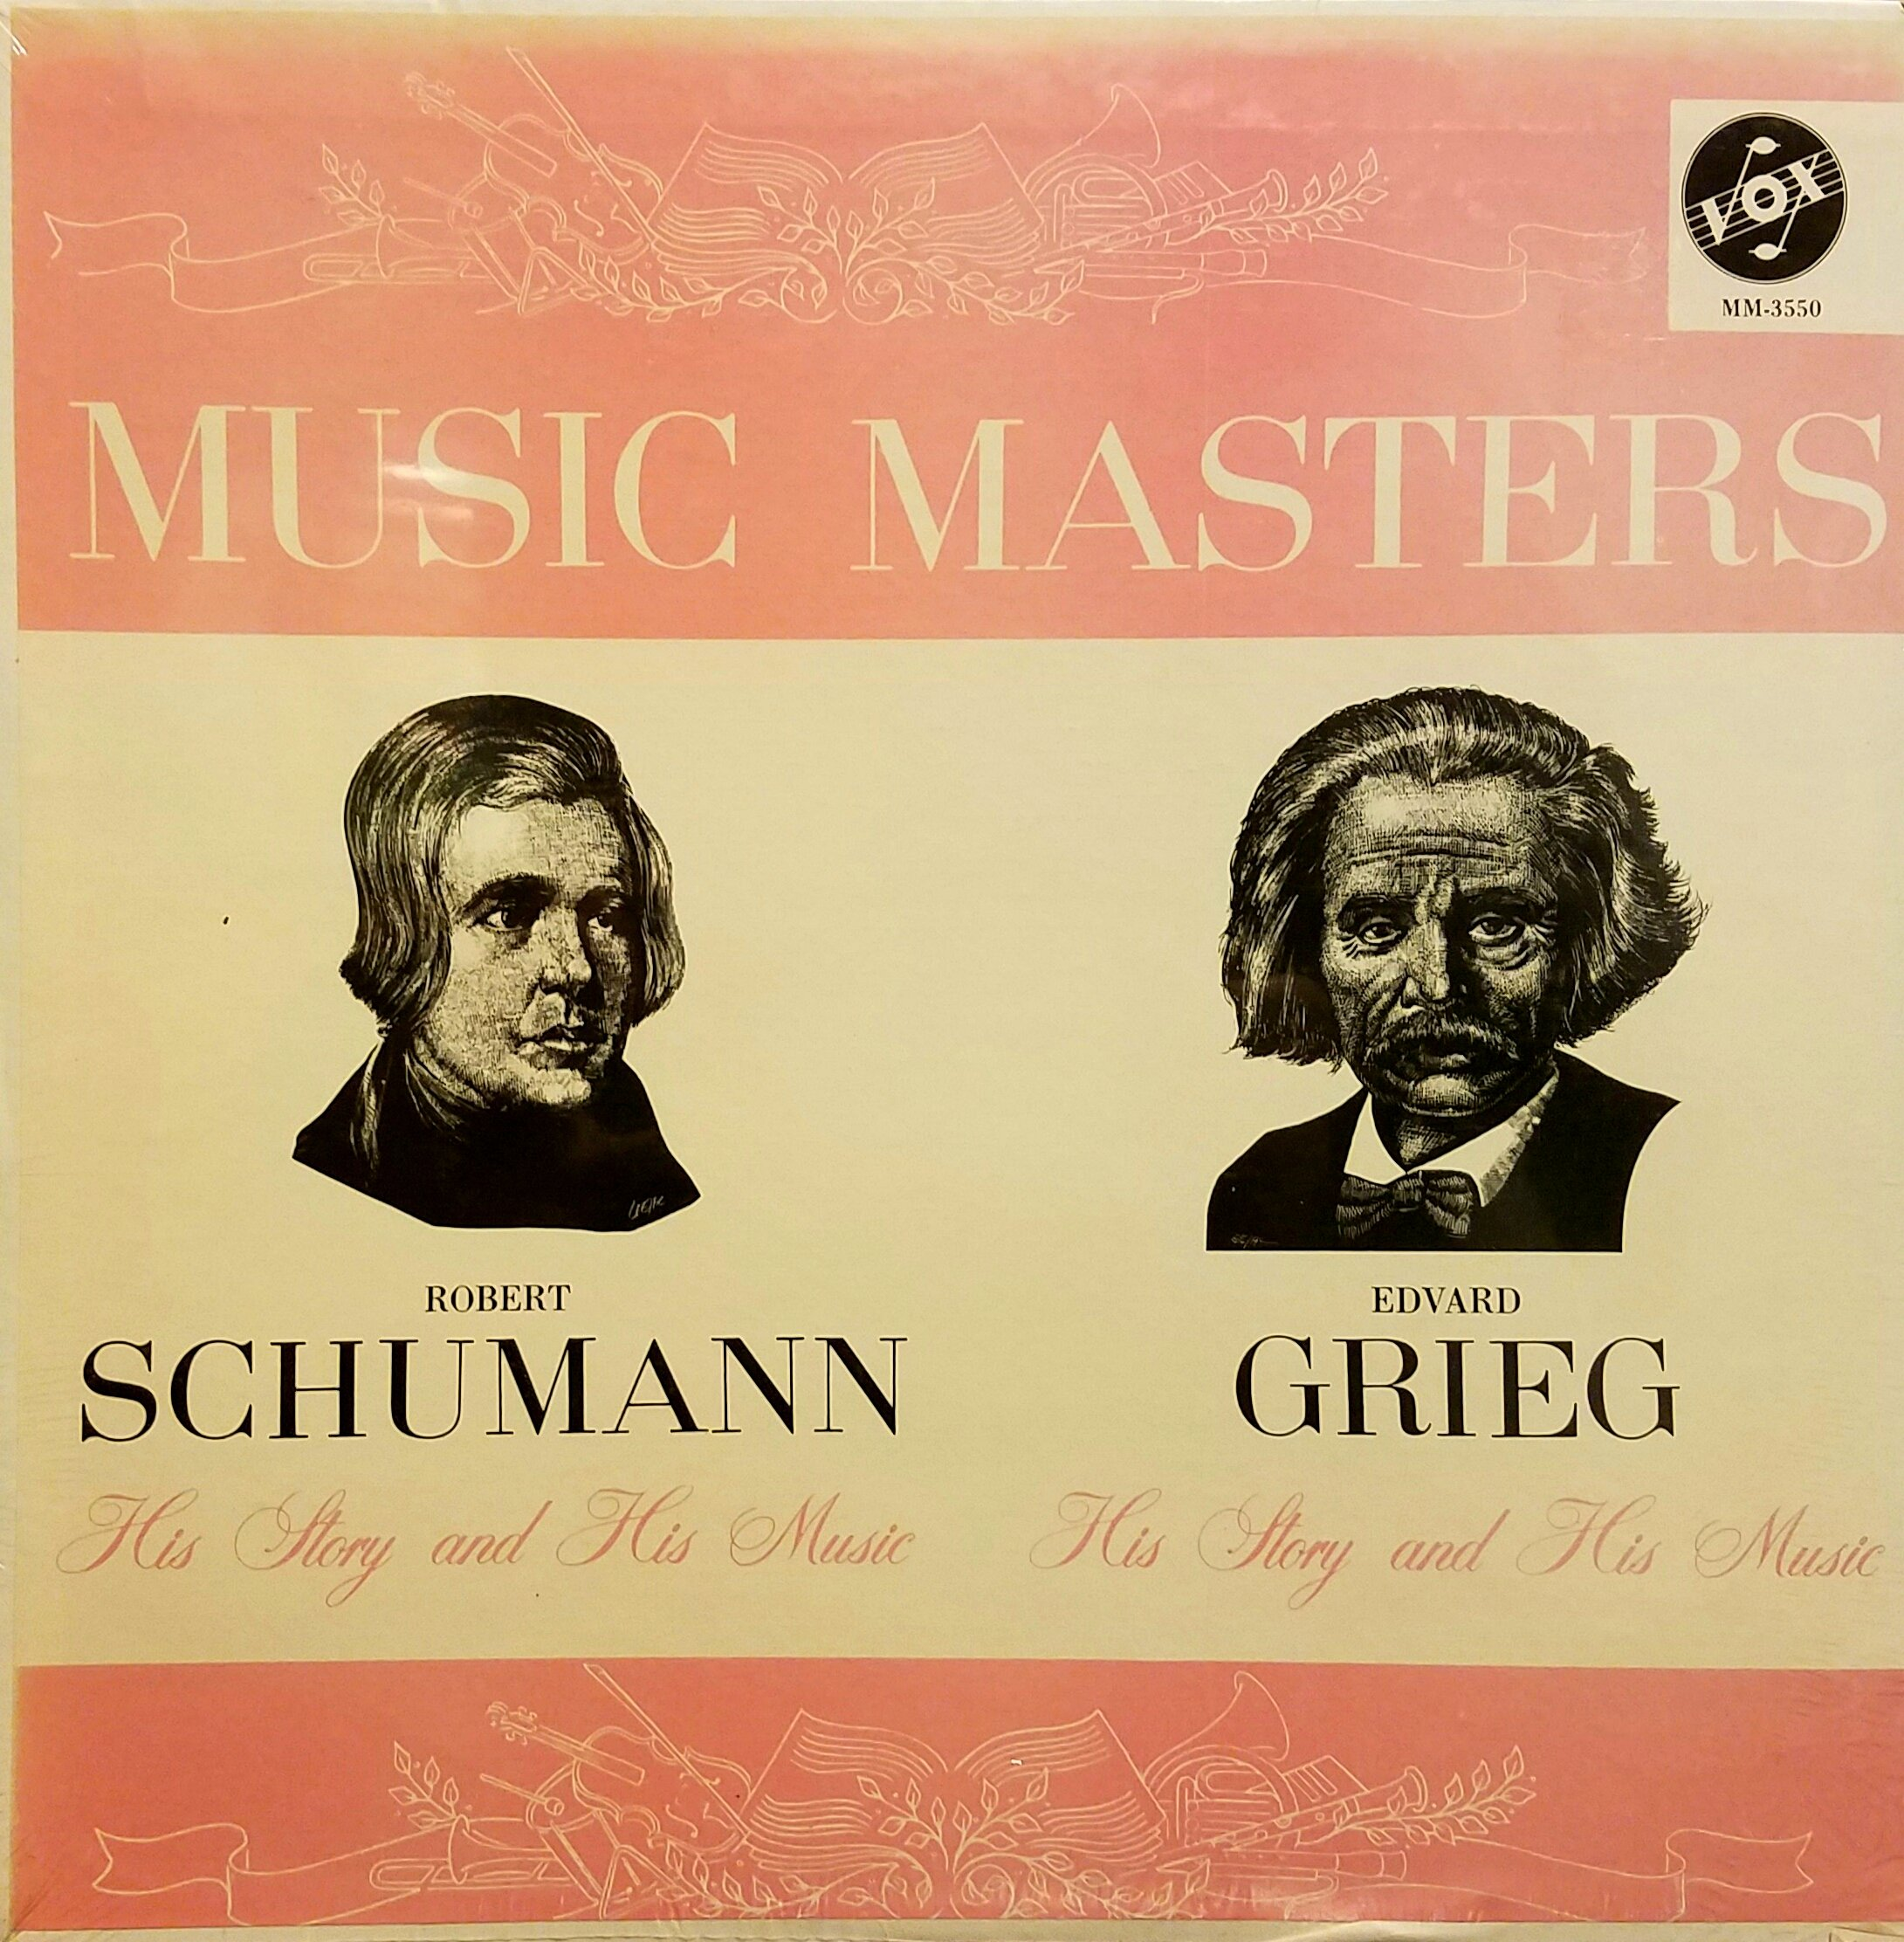 Robert Schumann - His Story and His Music, Edvard Grieg - His Story and His Music by Vox Music Masters